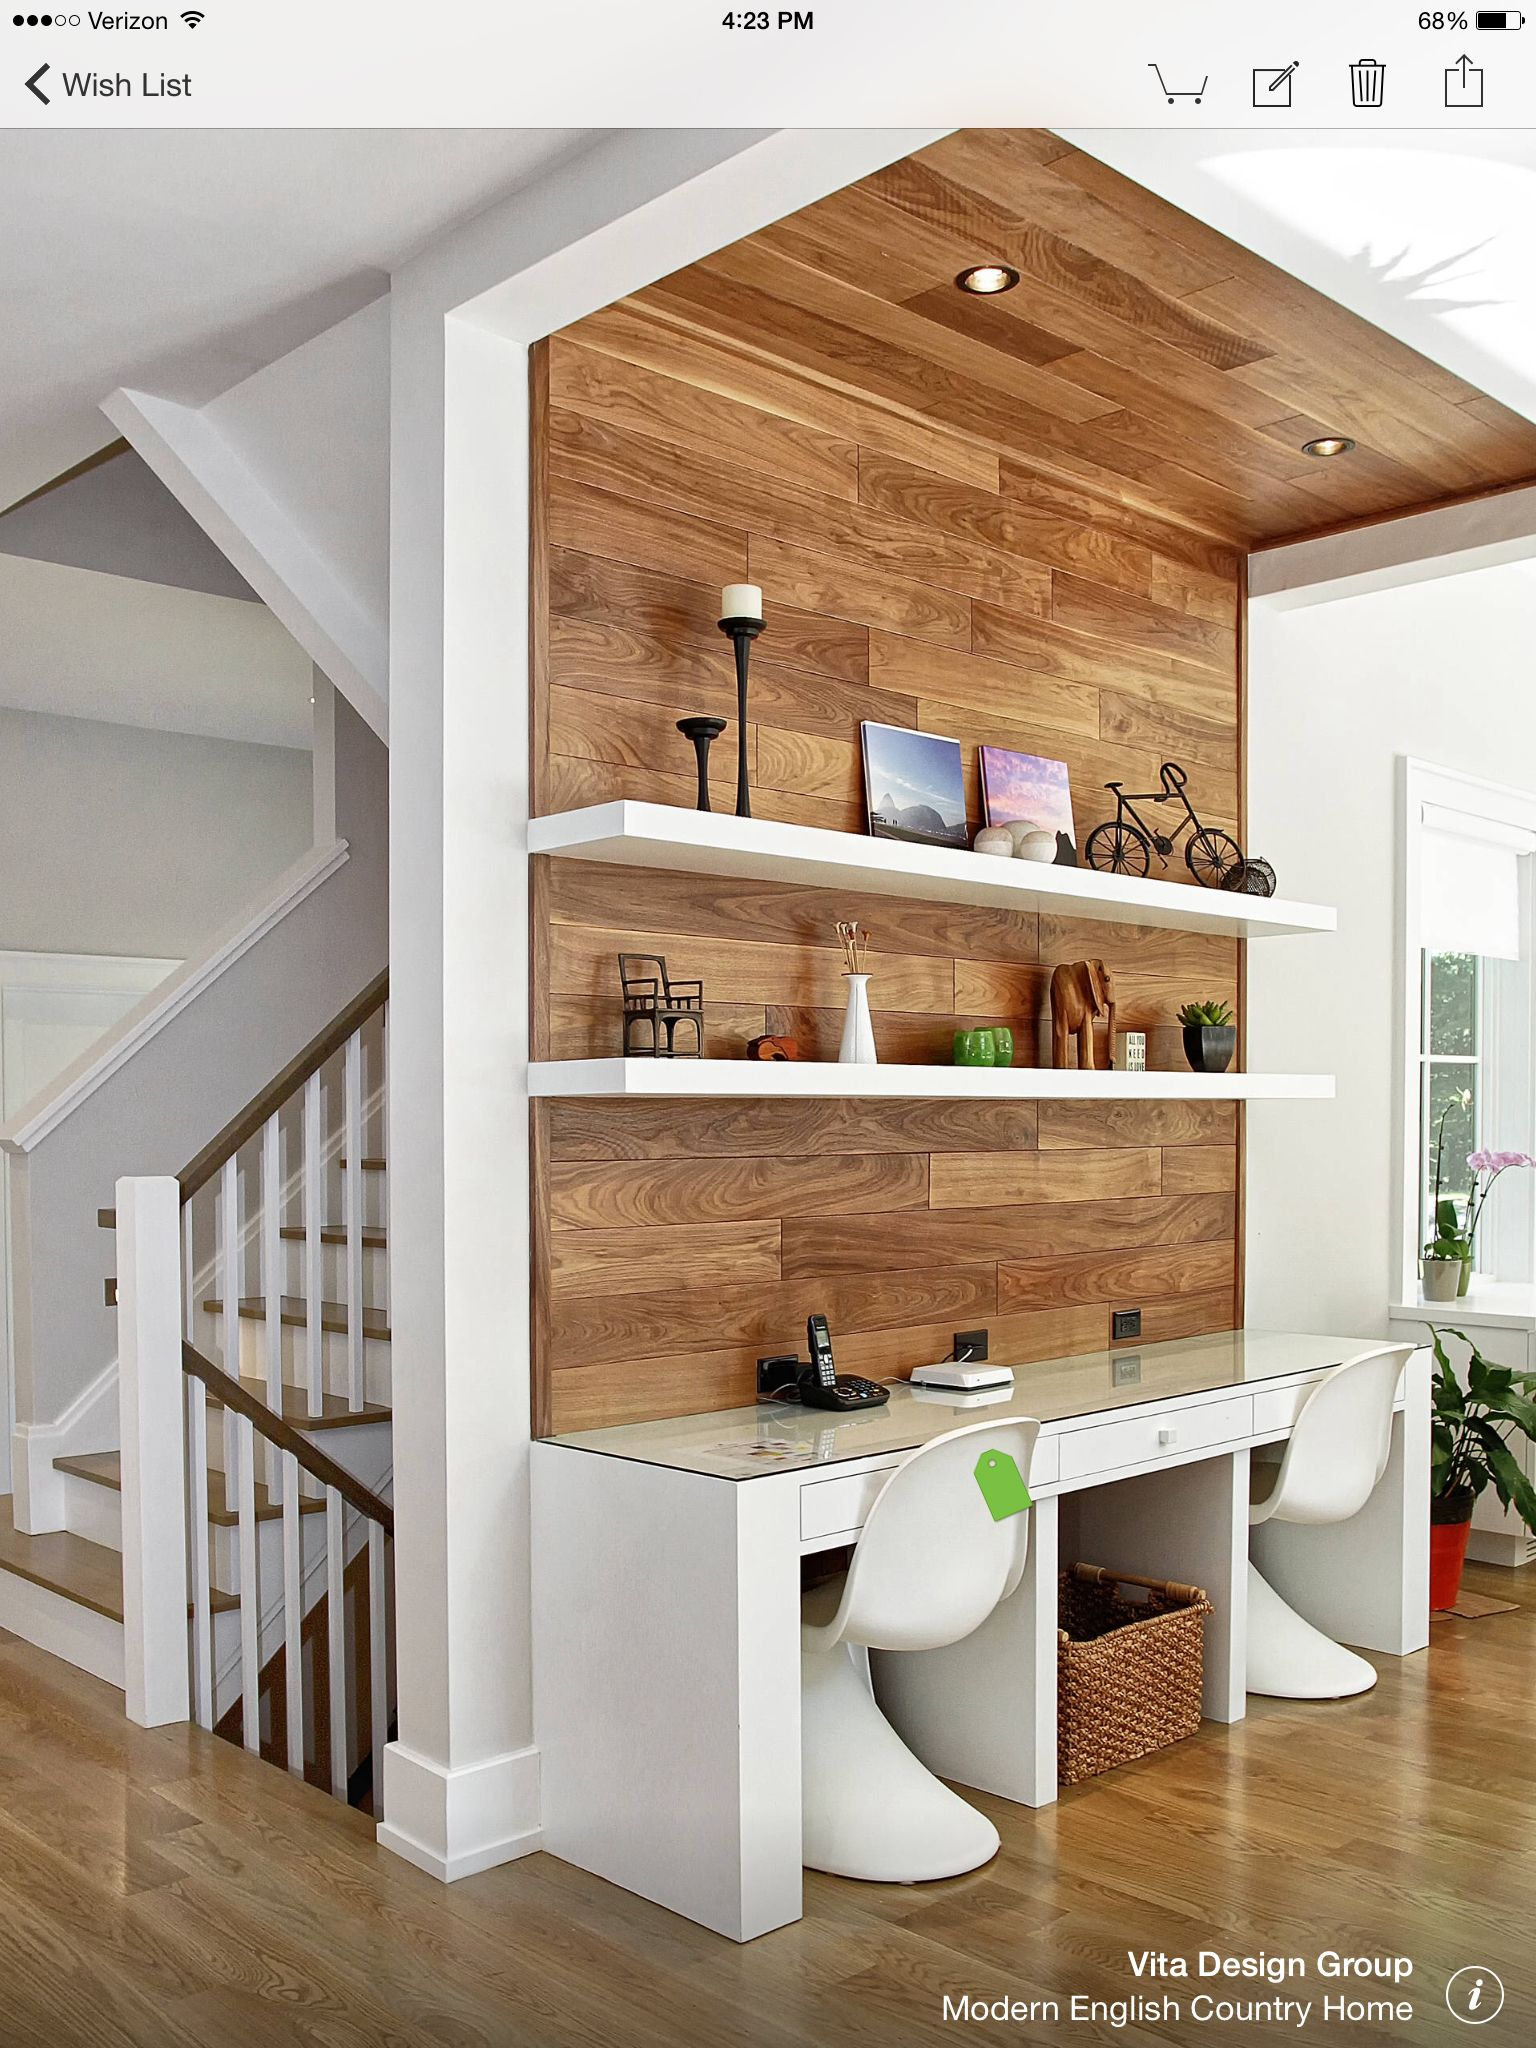 houzz interior design ideas office designs. With Beautiful Work Spaces Such As This Offices Hidden Away Are No Longer A Necessity : ) Houzz Interior Design Ideas Office Designs